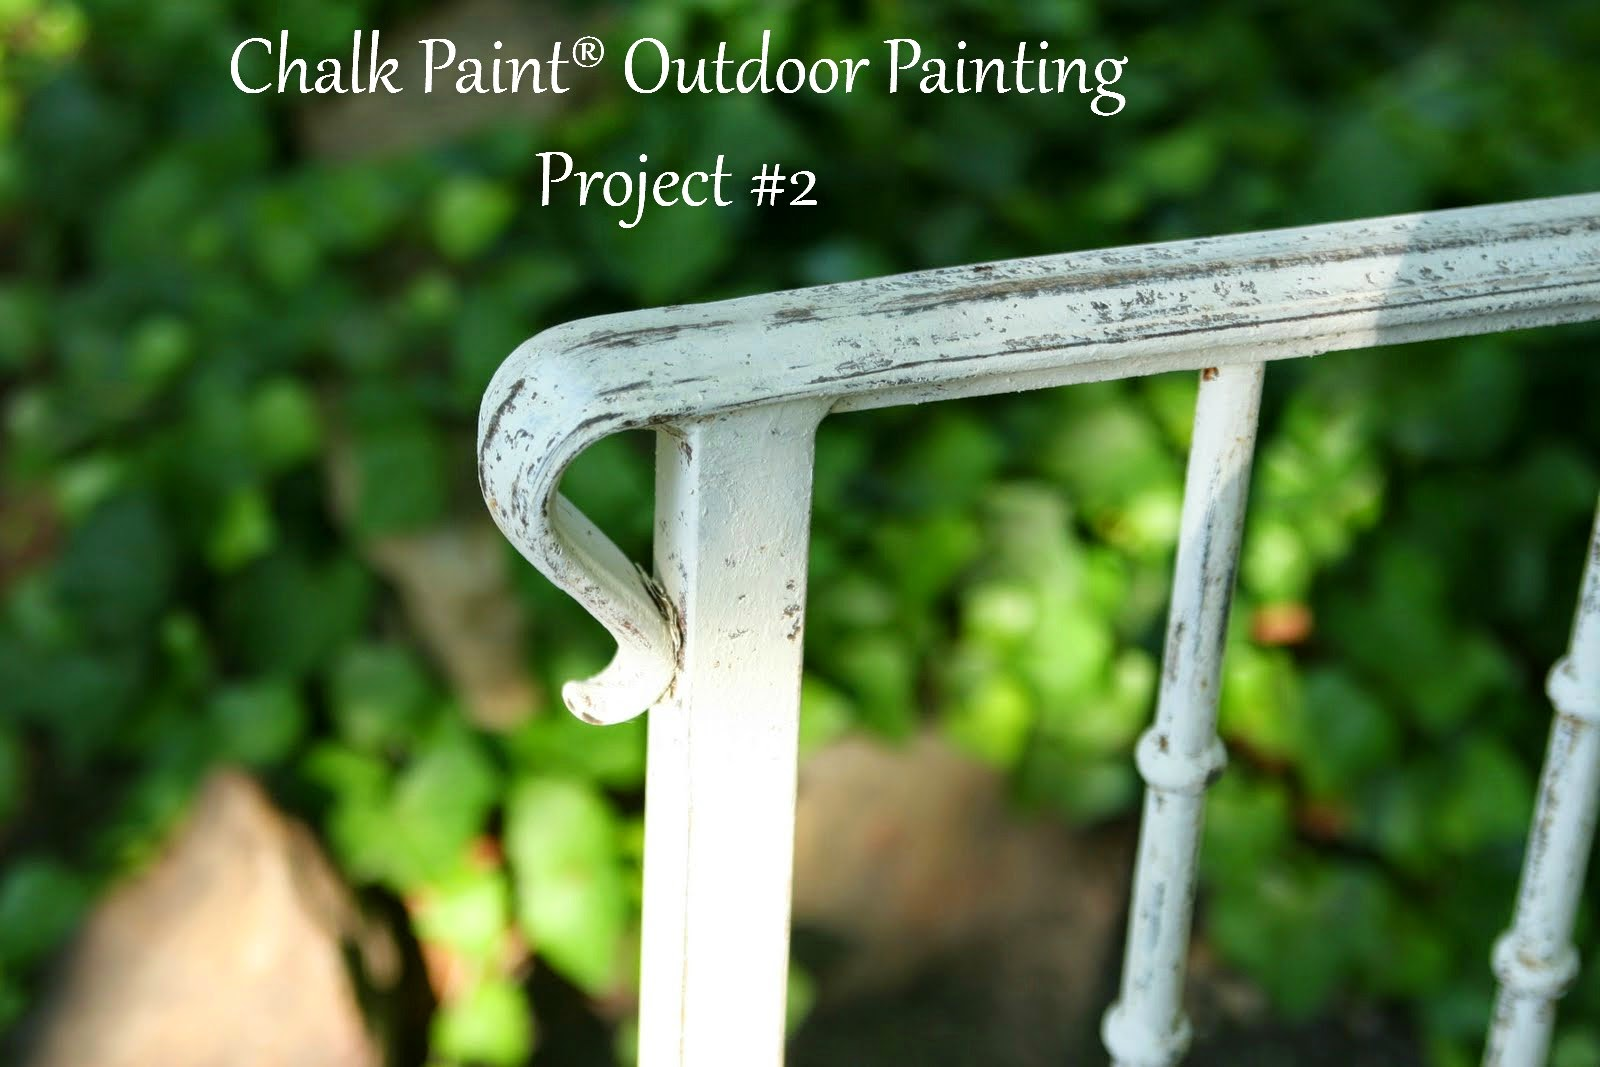 Outside Chalk Paint® Project #2